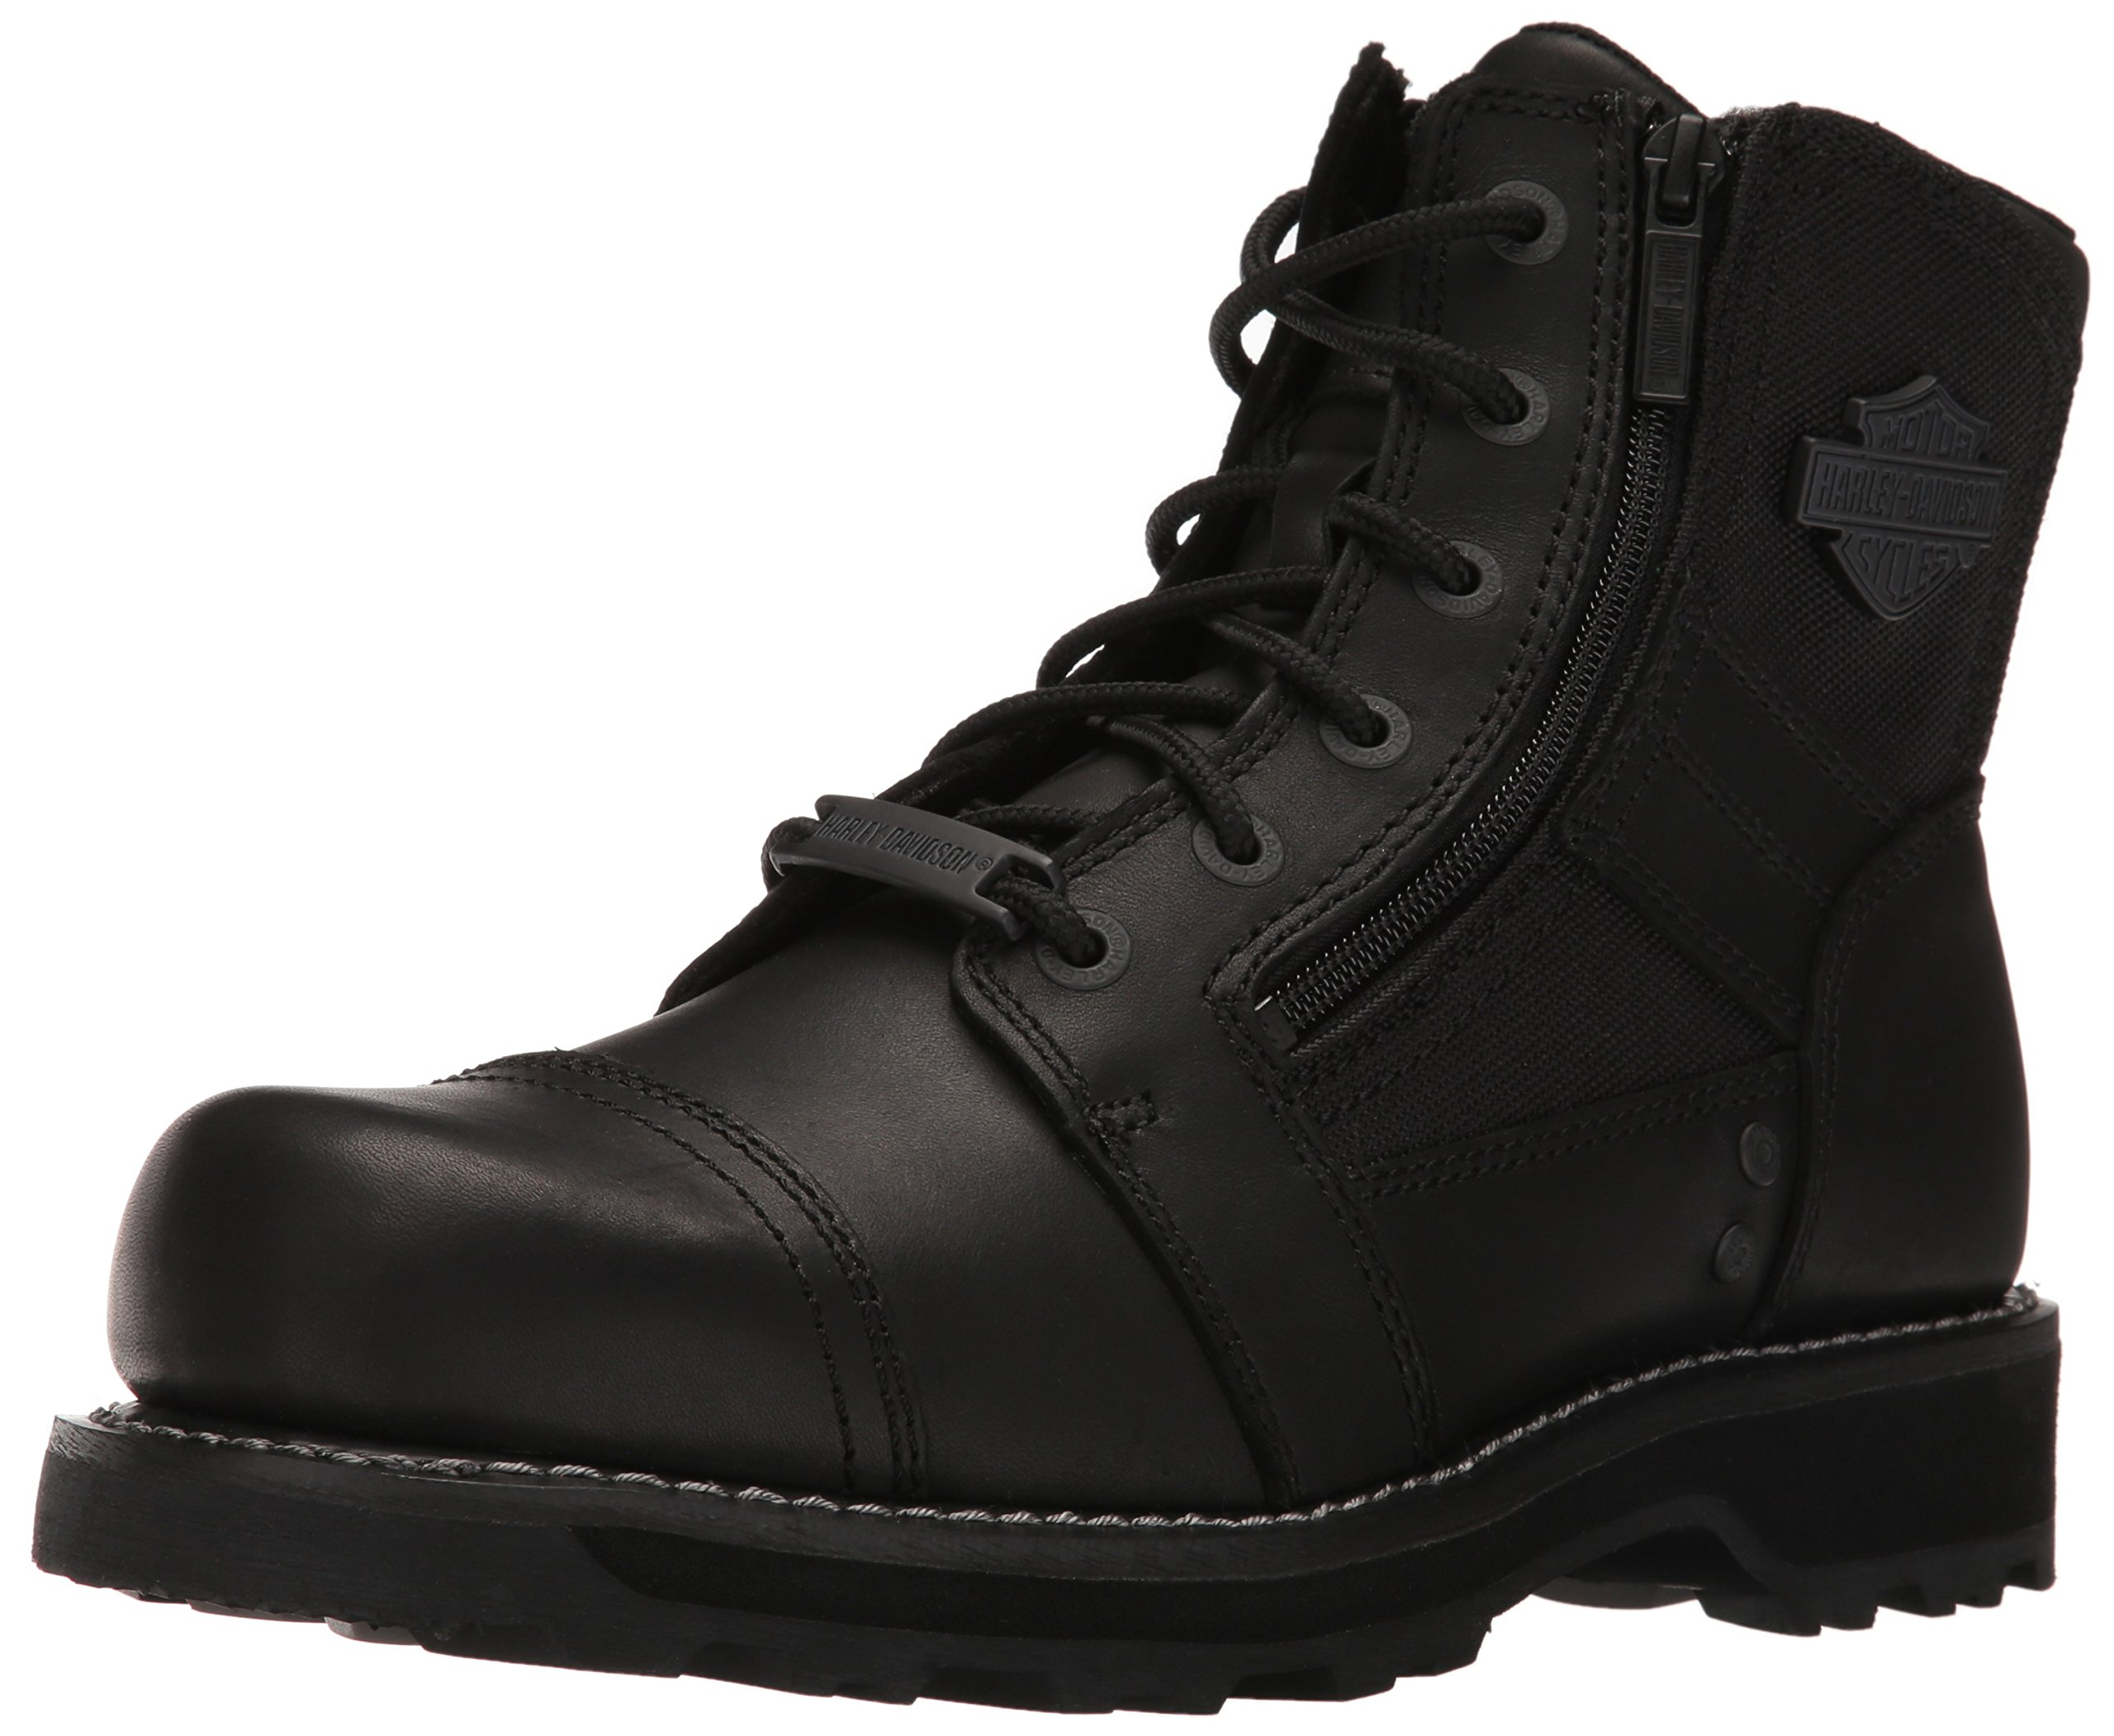 Harley-Davidson Men's Bonham Work Boot